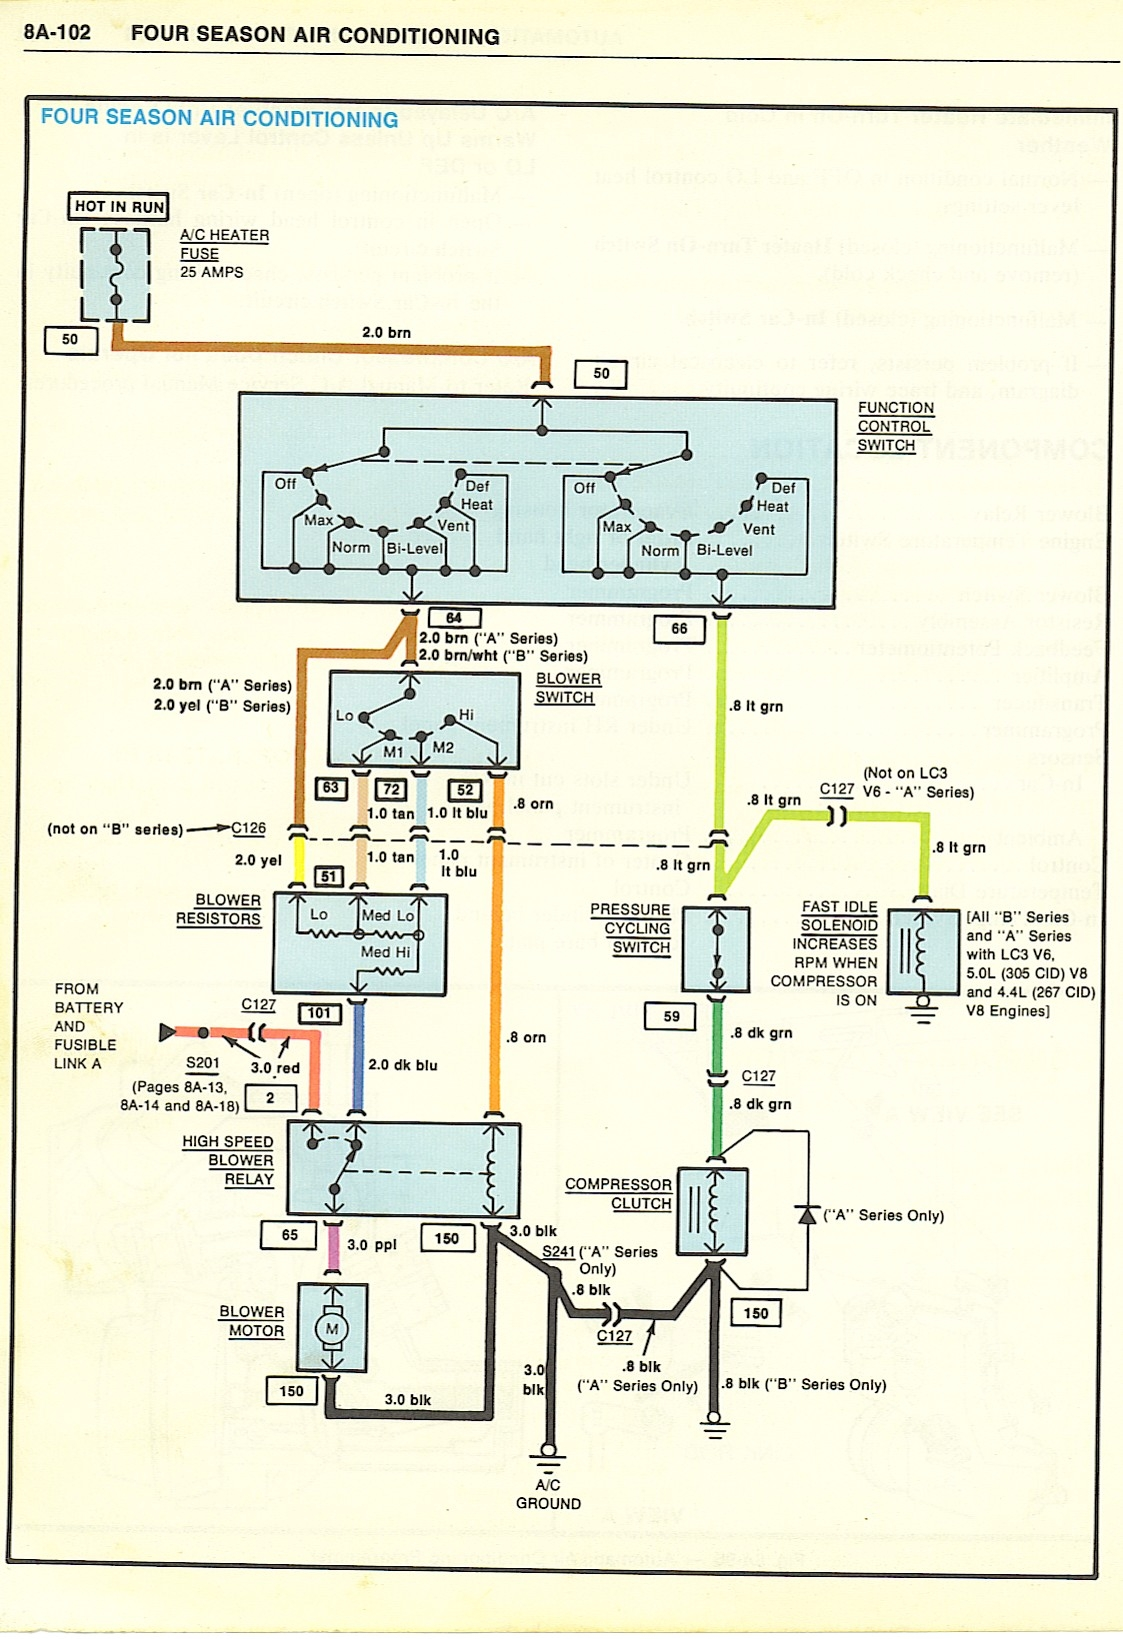 Chevy diagrams 1968 camero ac wiring drawing a asfbconference2016 Gallery